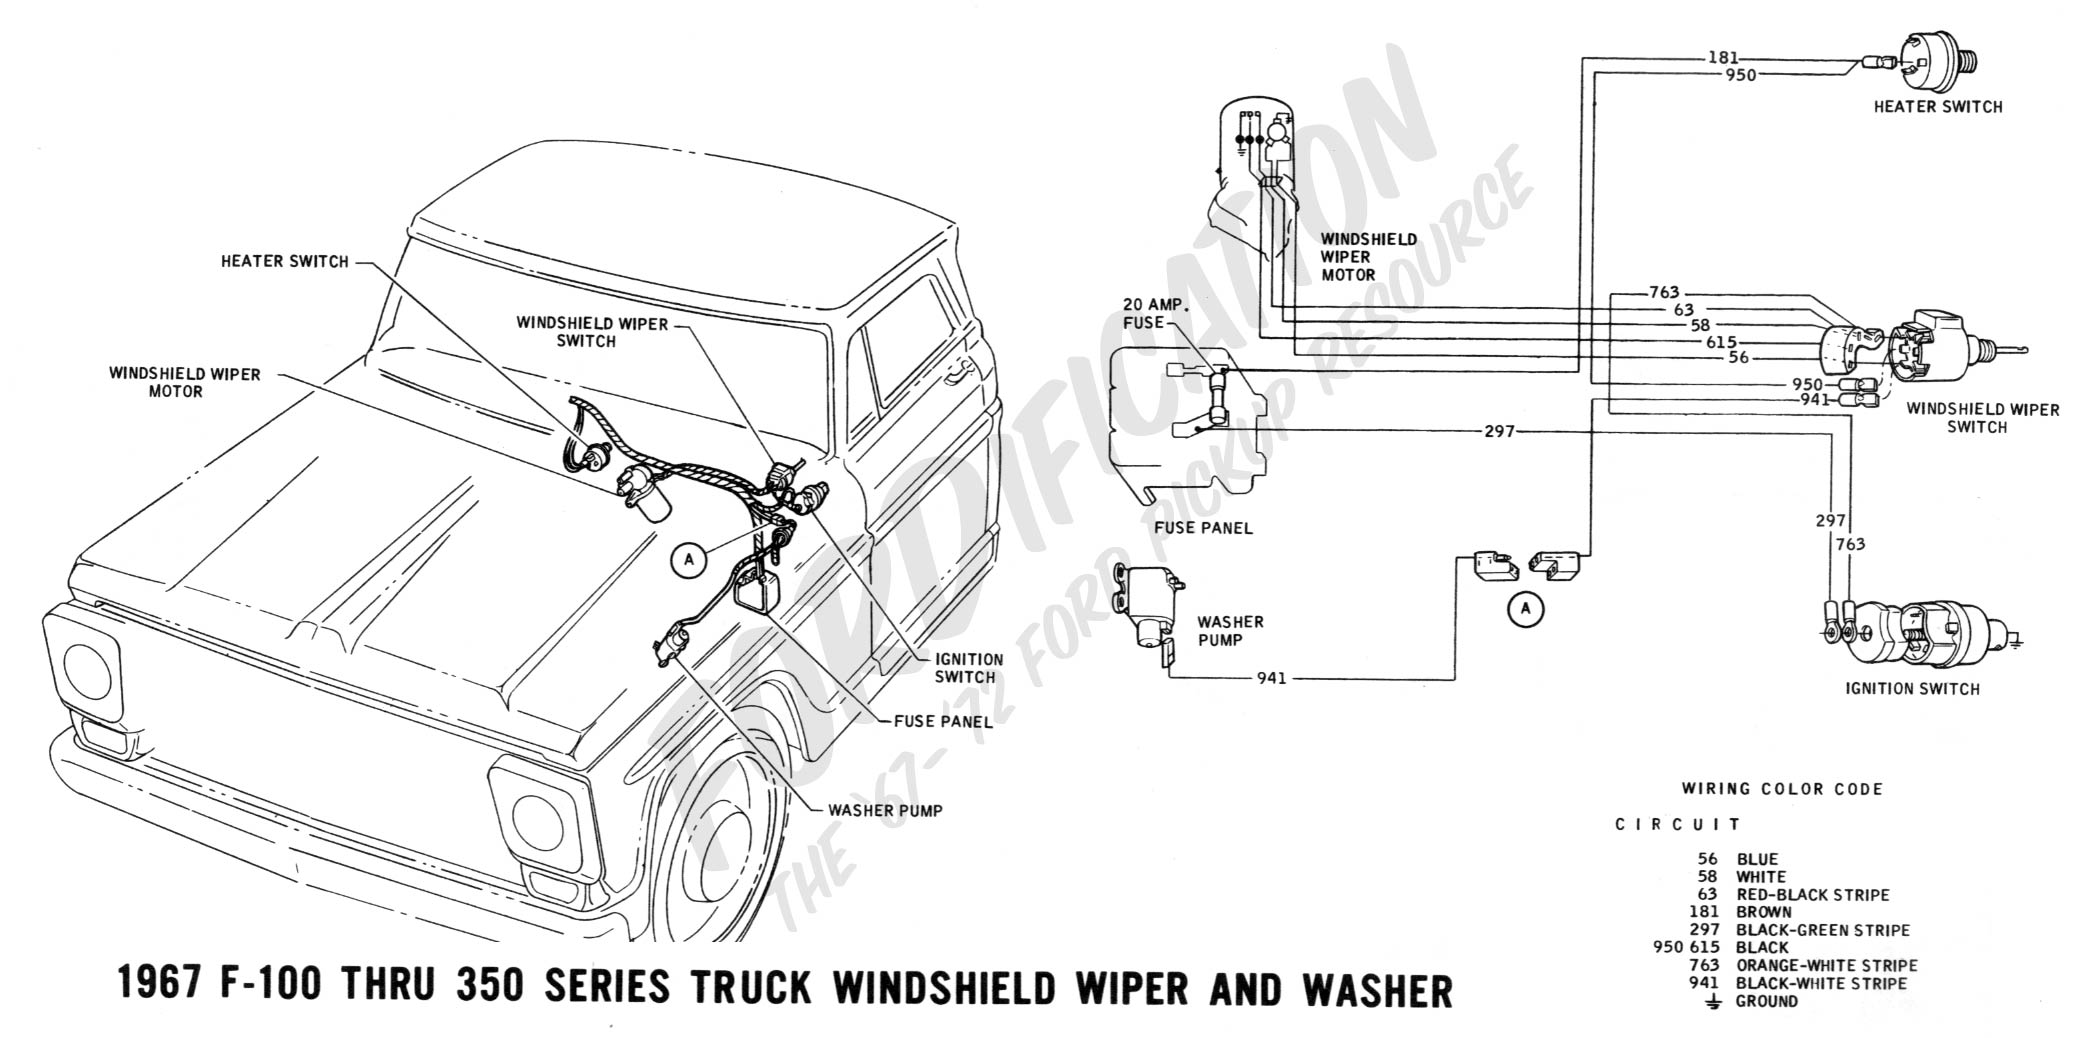 1954 Chevrolet Wiring Diagram For Car additionally 59 F100 Wiring Problem as well Wiring as well Universal Turn Signal Wiring Diagram Brake Light besides 1957 Bel Air Wiring Diagram. on 1956 chevy turn signal switch wiring diagram